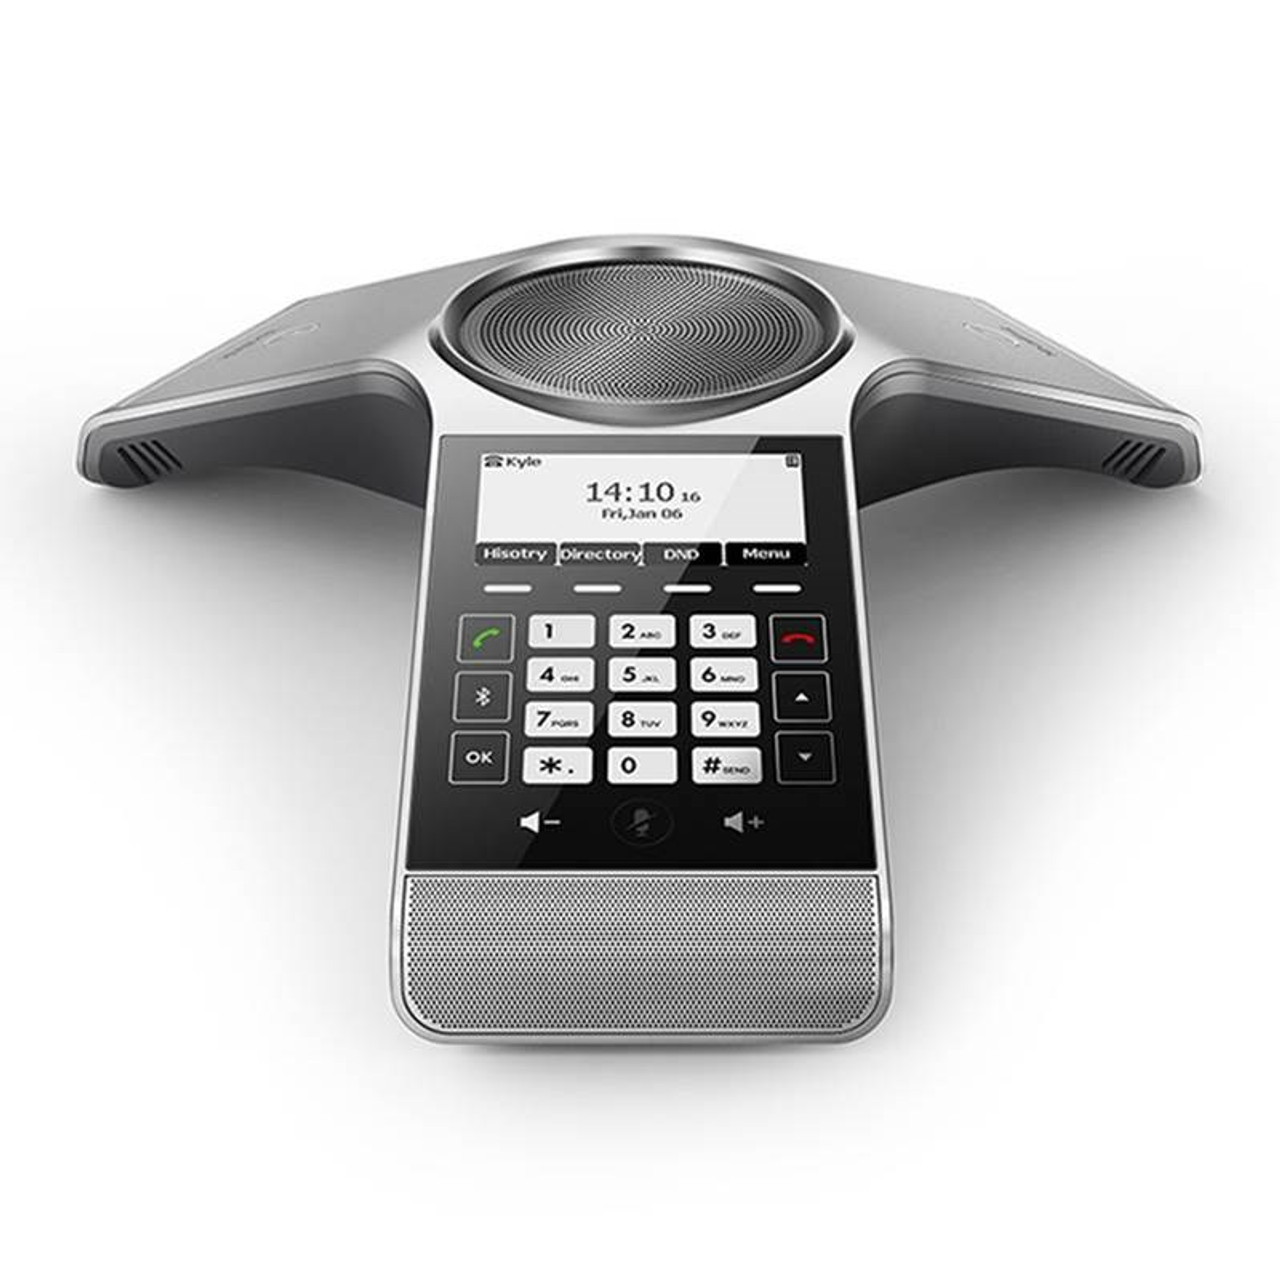 Image for Yealink CP930W Wireless DECT Conference Phone CX Computer Superstore